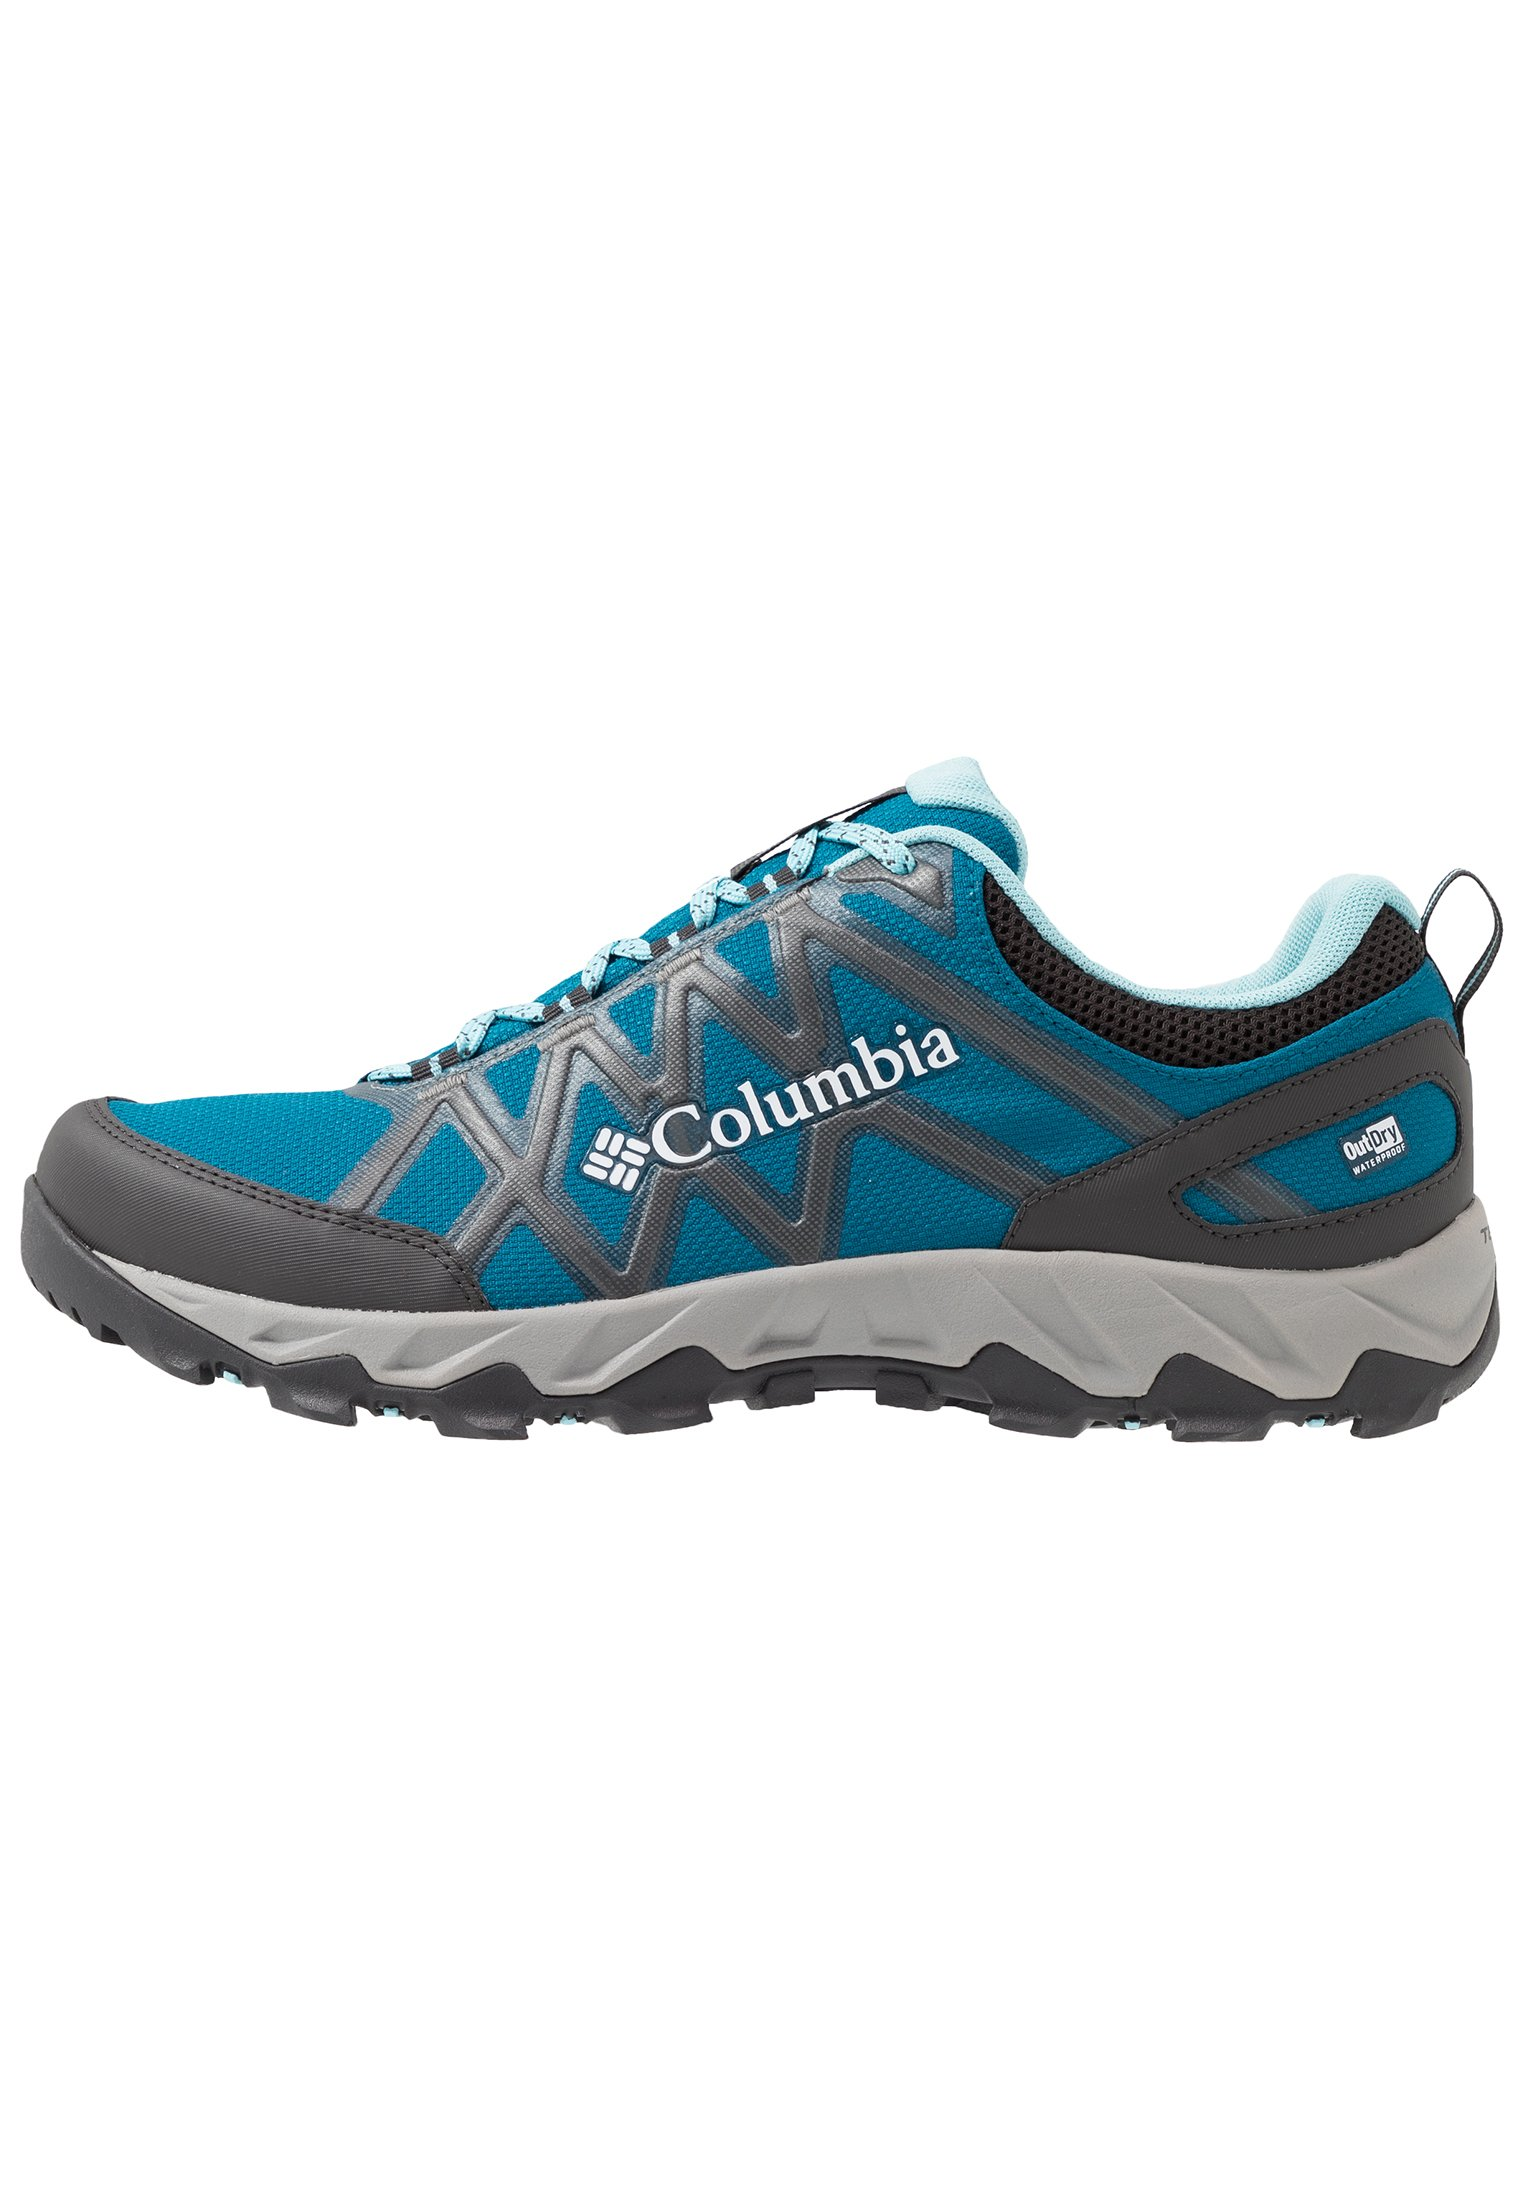 Columbia Peakfreak™X2 Outdry™, hikingsko dame Multicolor